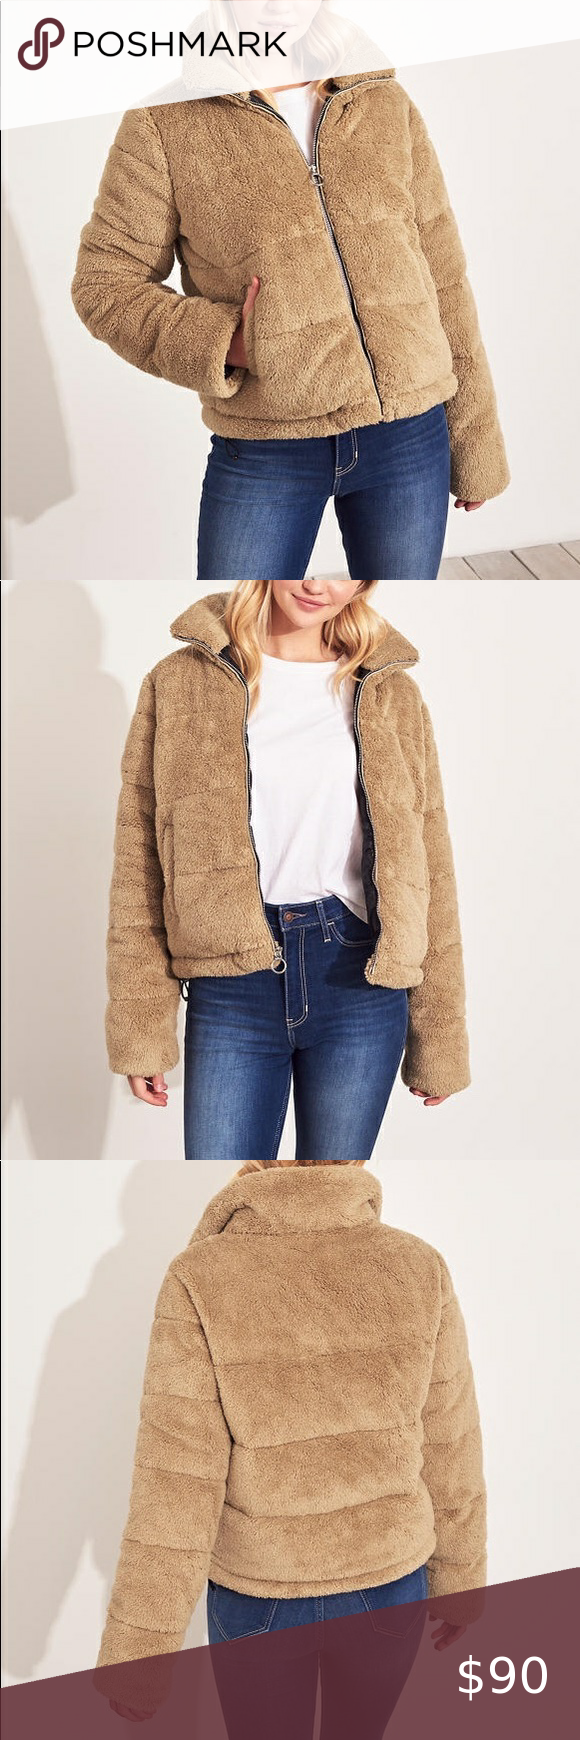 New Cozy Mockneck Puffer Jacket Clothes Design Fashion Puffer Jackets [ 1740 x 580 Pixel ]